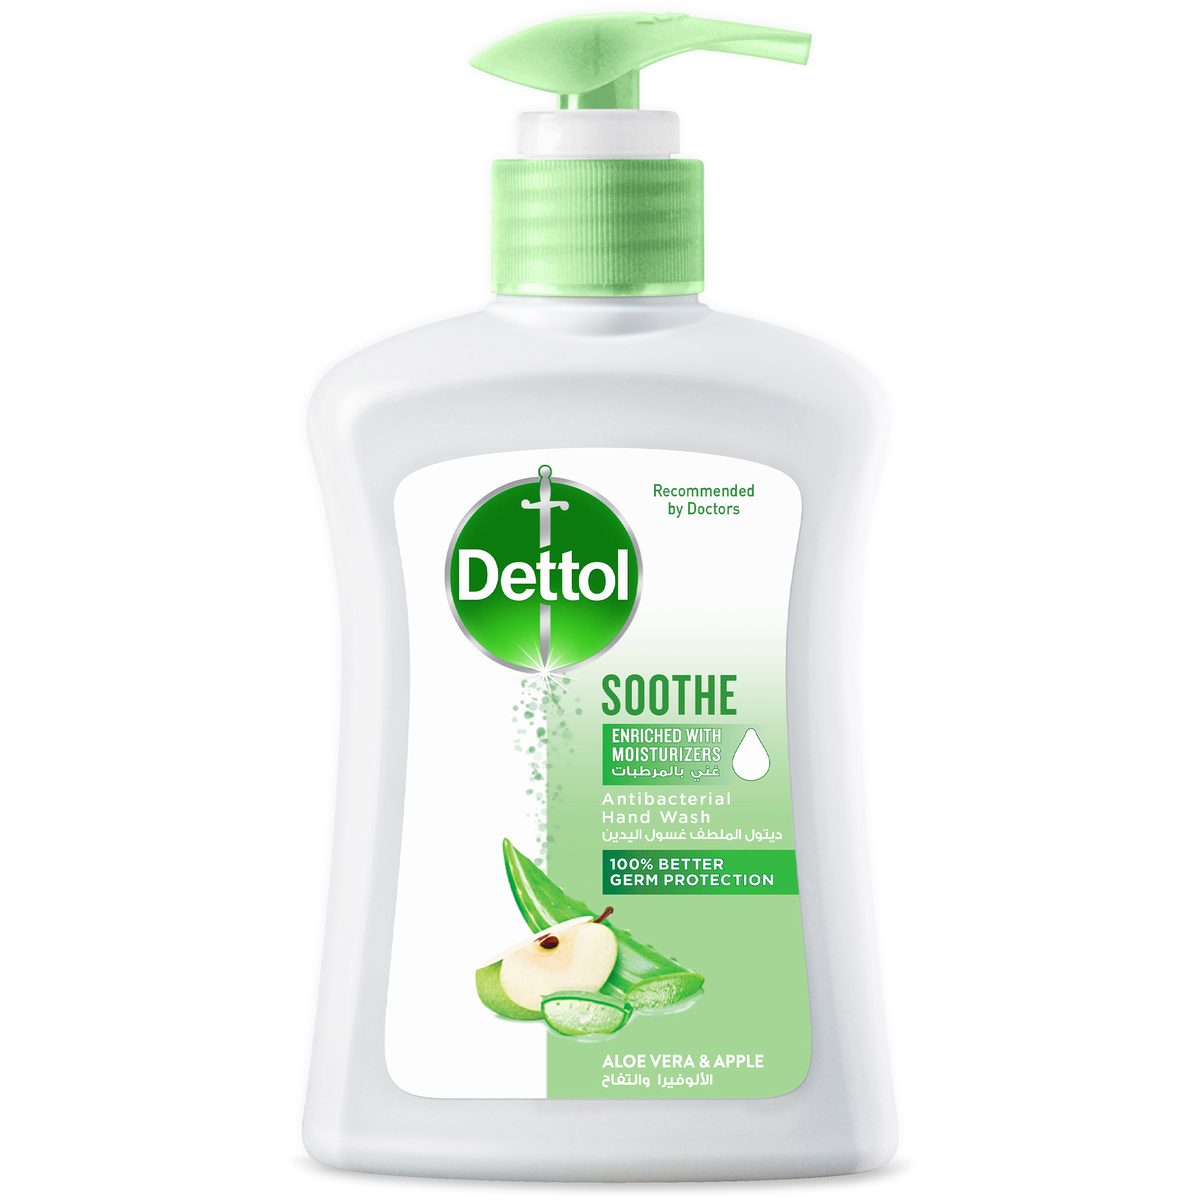 Buy Dettol Soothe Antibacterial Liquid Hand Wash 200ml.